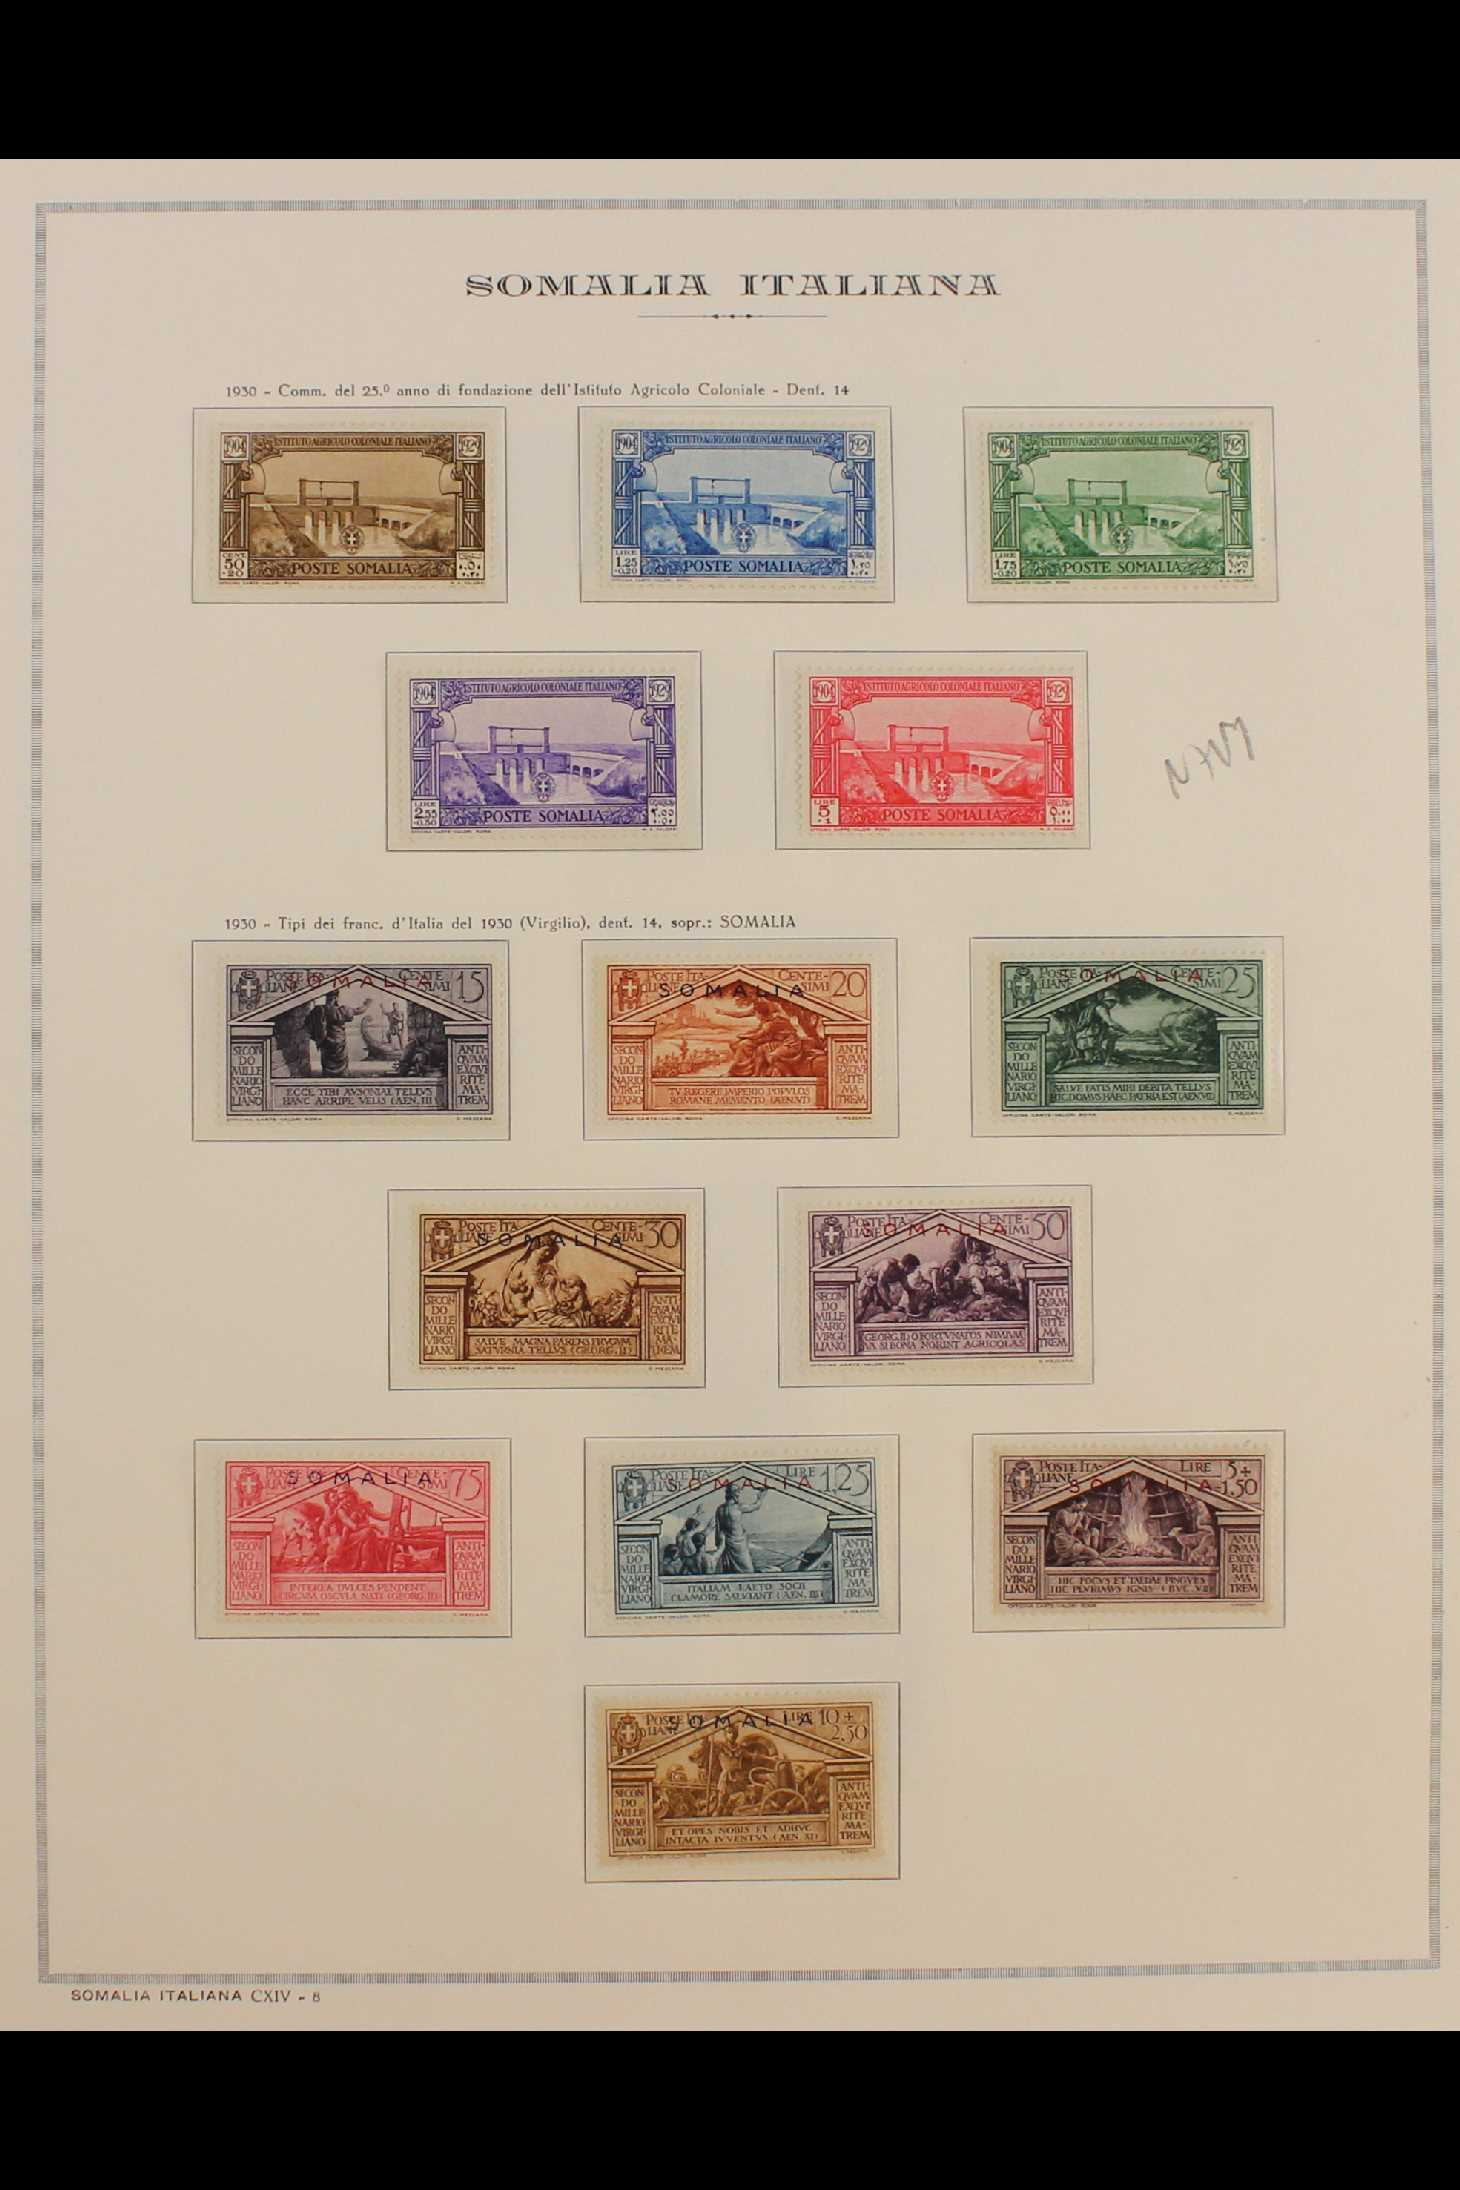 ITALIAN COLONIES SOMALIA 1922-1940 fine mint collection incl.1922 surcharged set, 1923 Fide set NHM, - Image 10 of 18